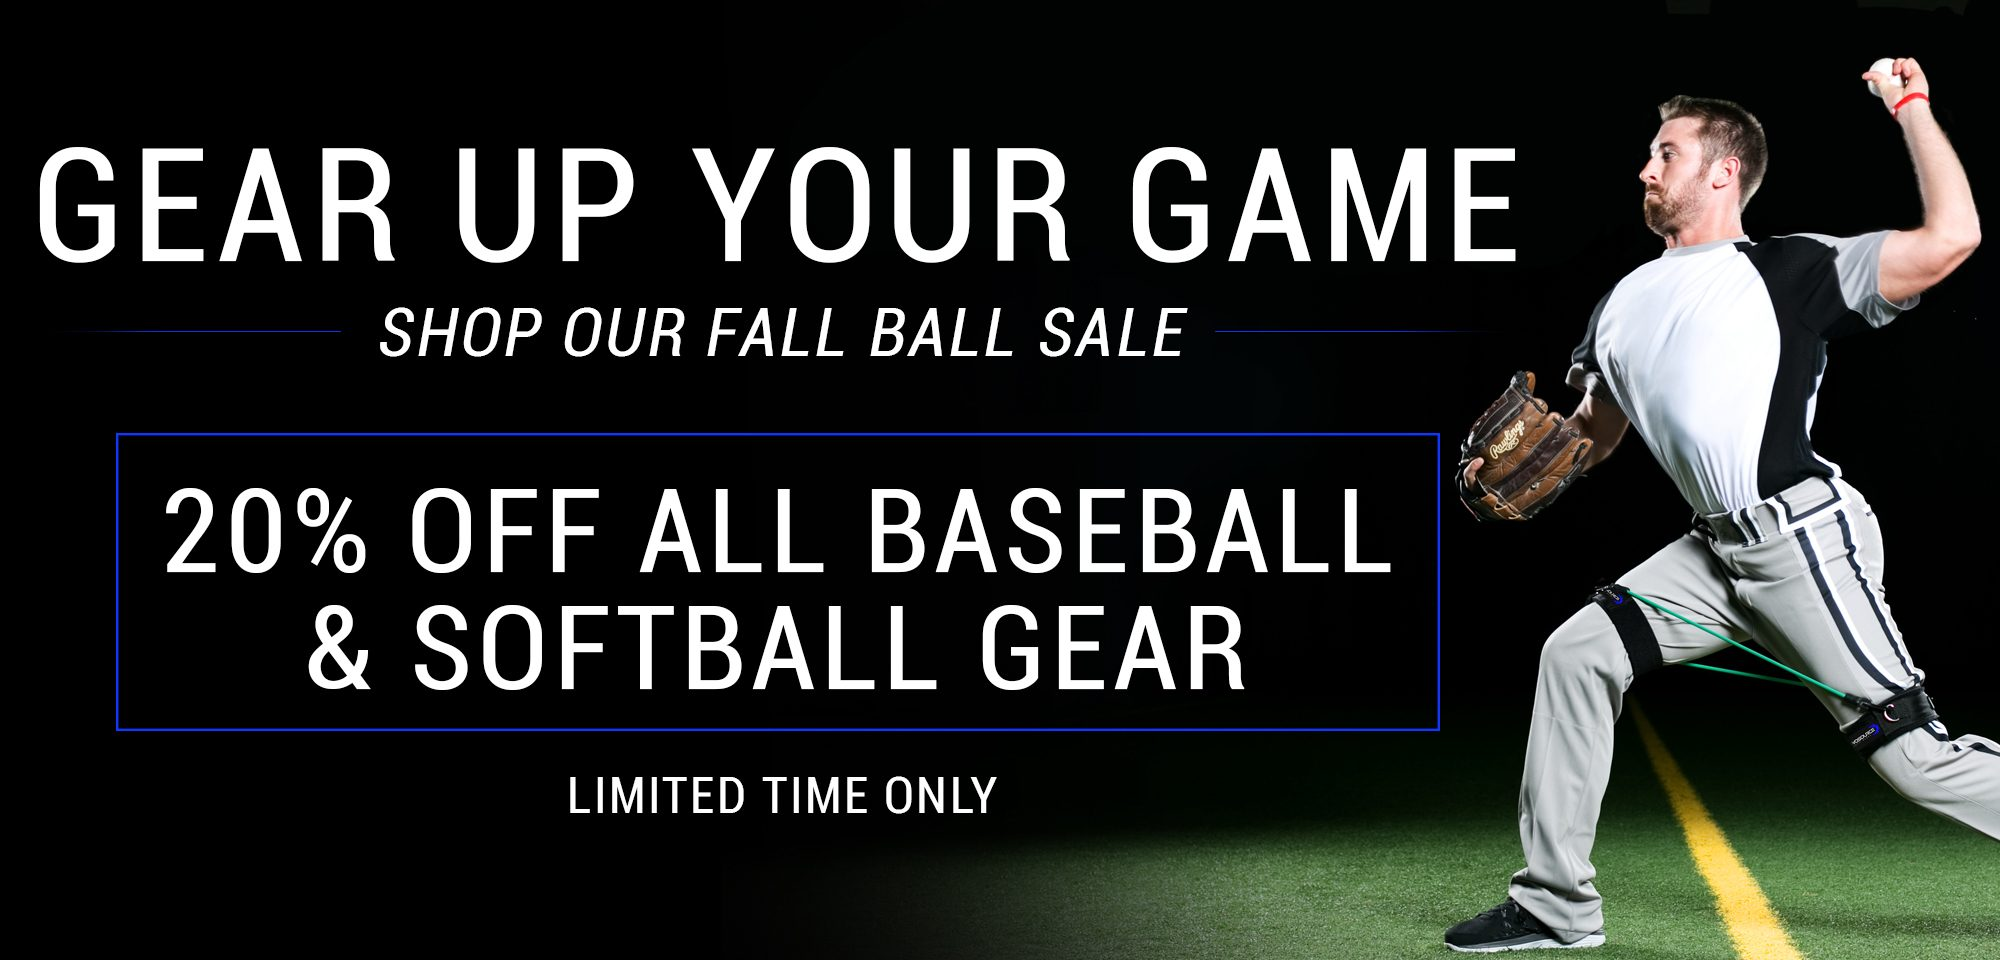 Gear Up Your Game - Shop Our Fall Ball Sale - 20% Off All Baseball and Softball Gear - Limited Time Only